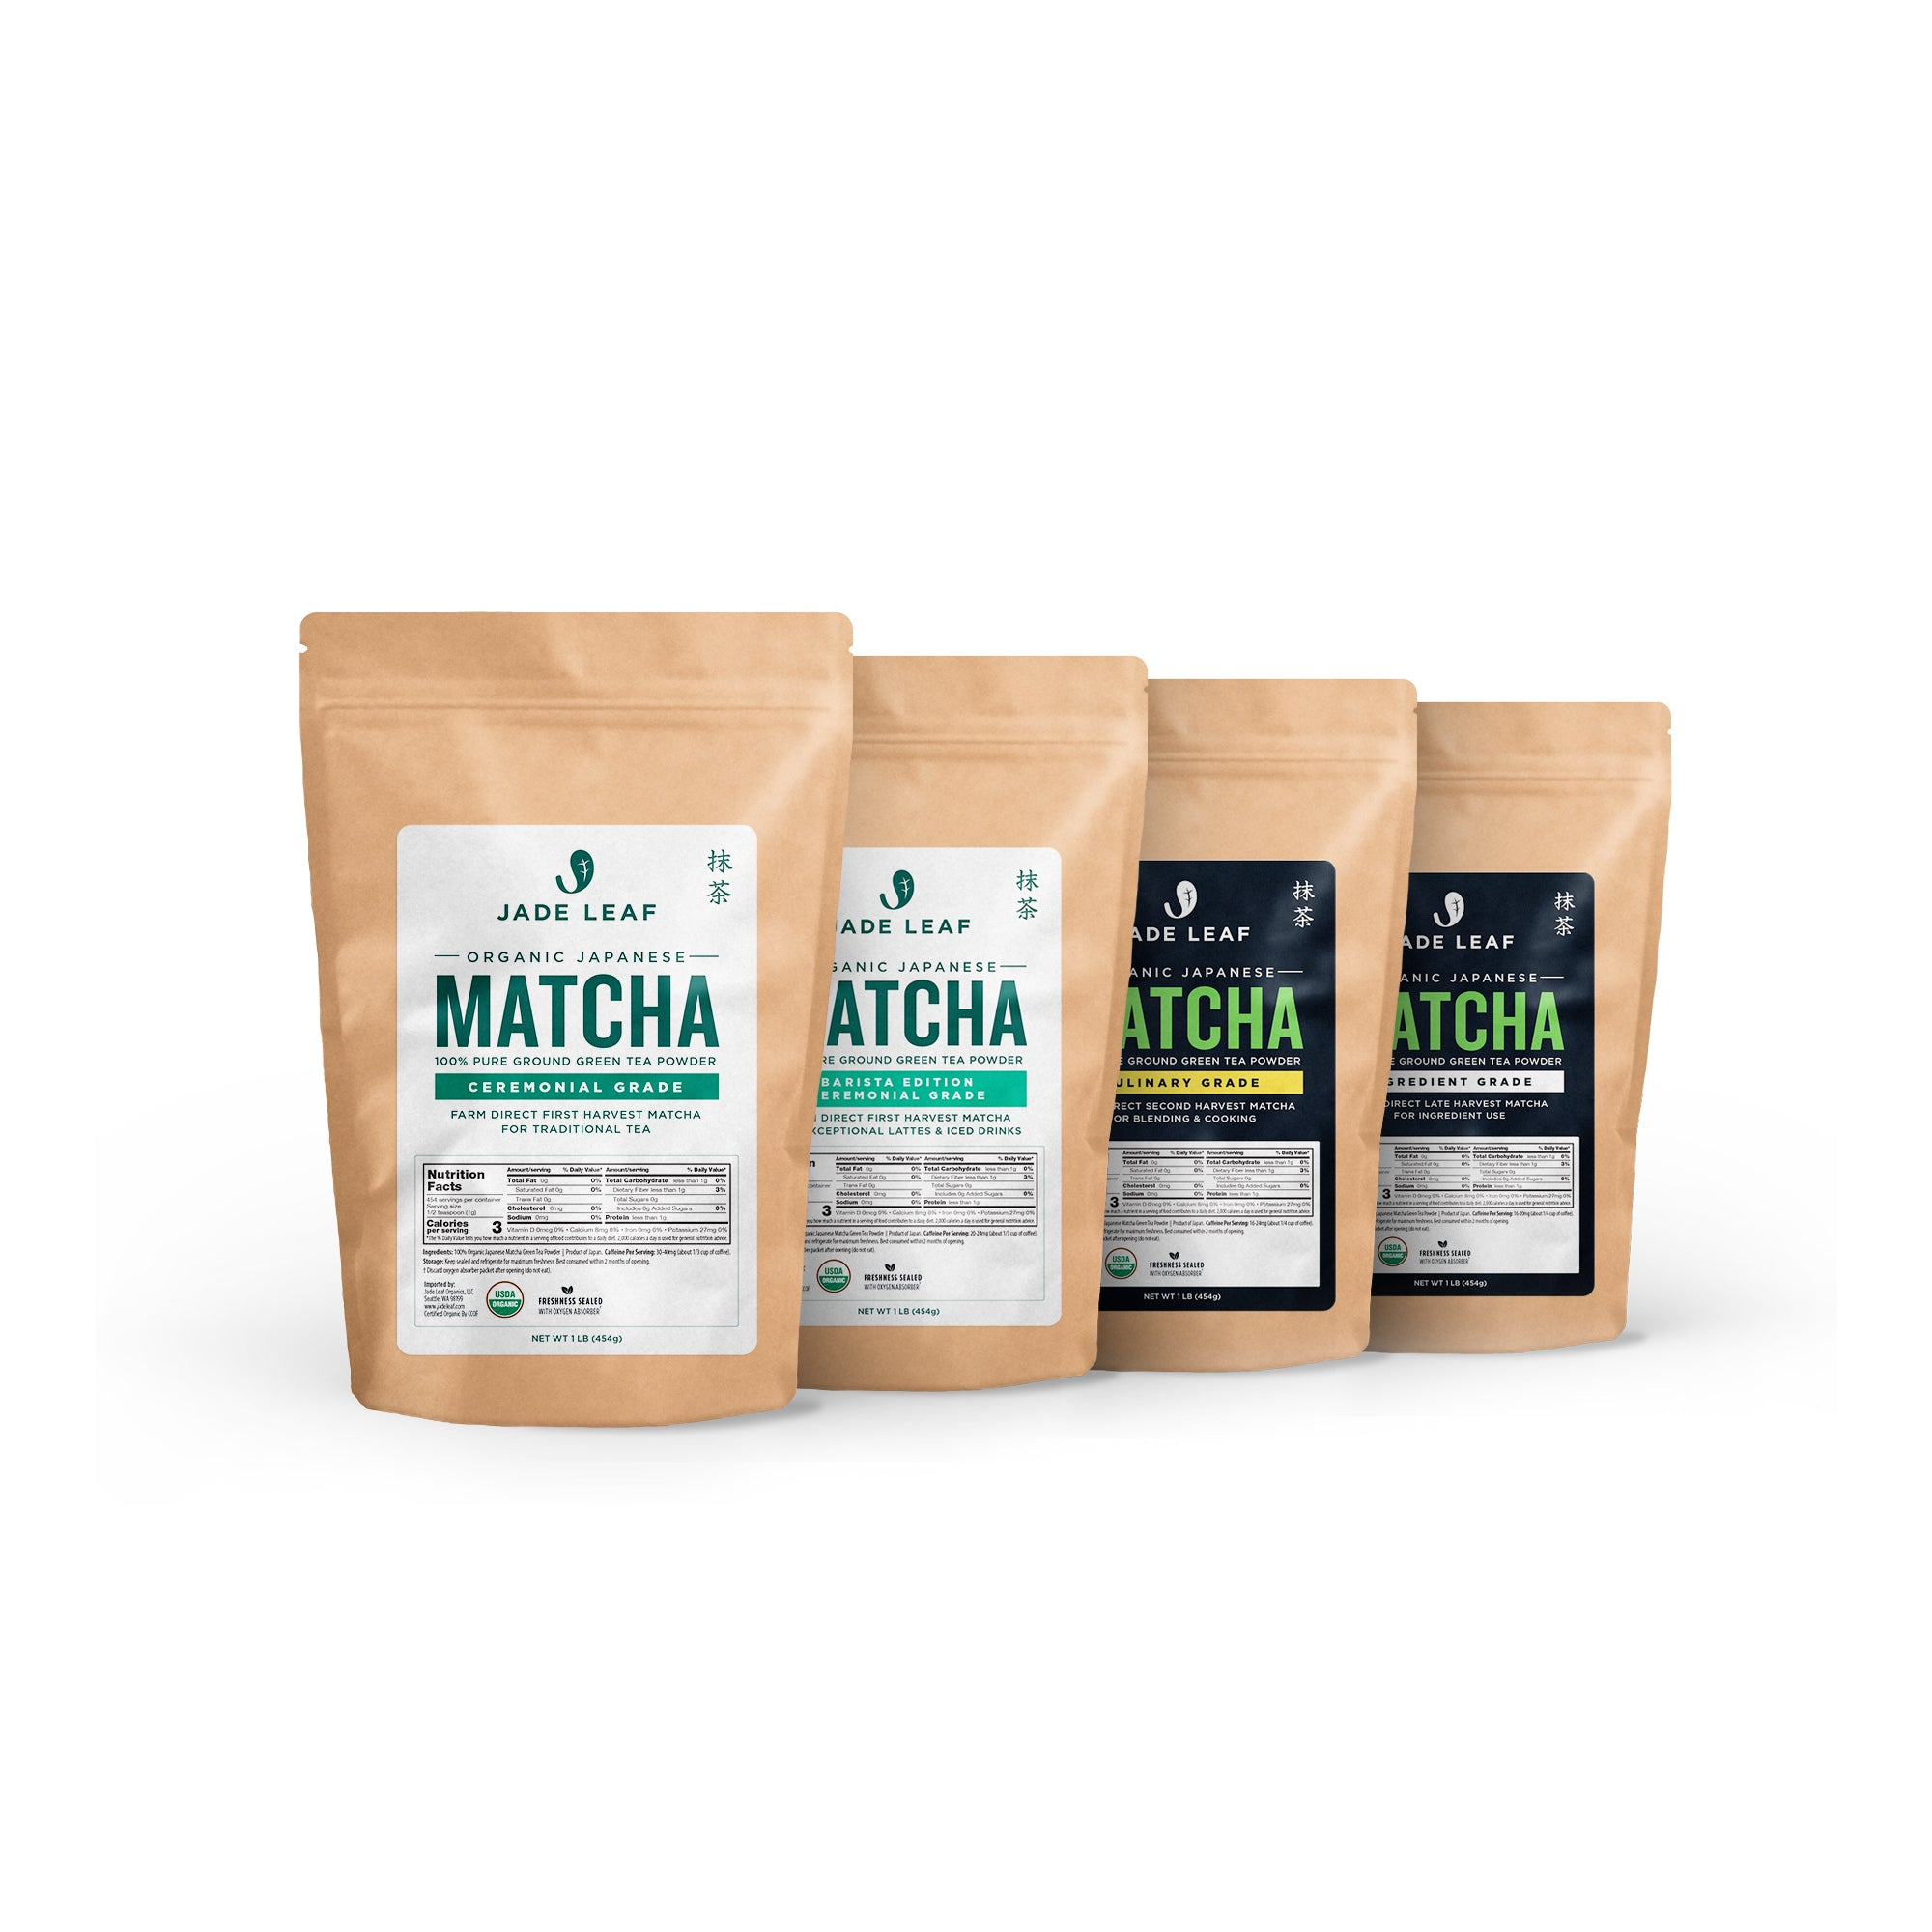 Jade Leaf Organic Matcha Samples